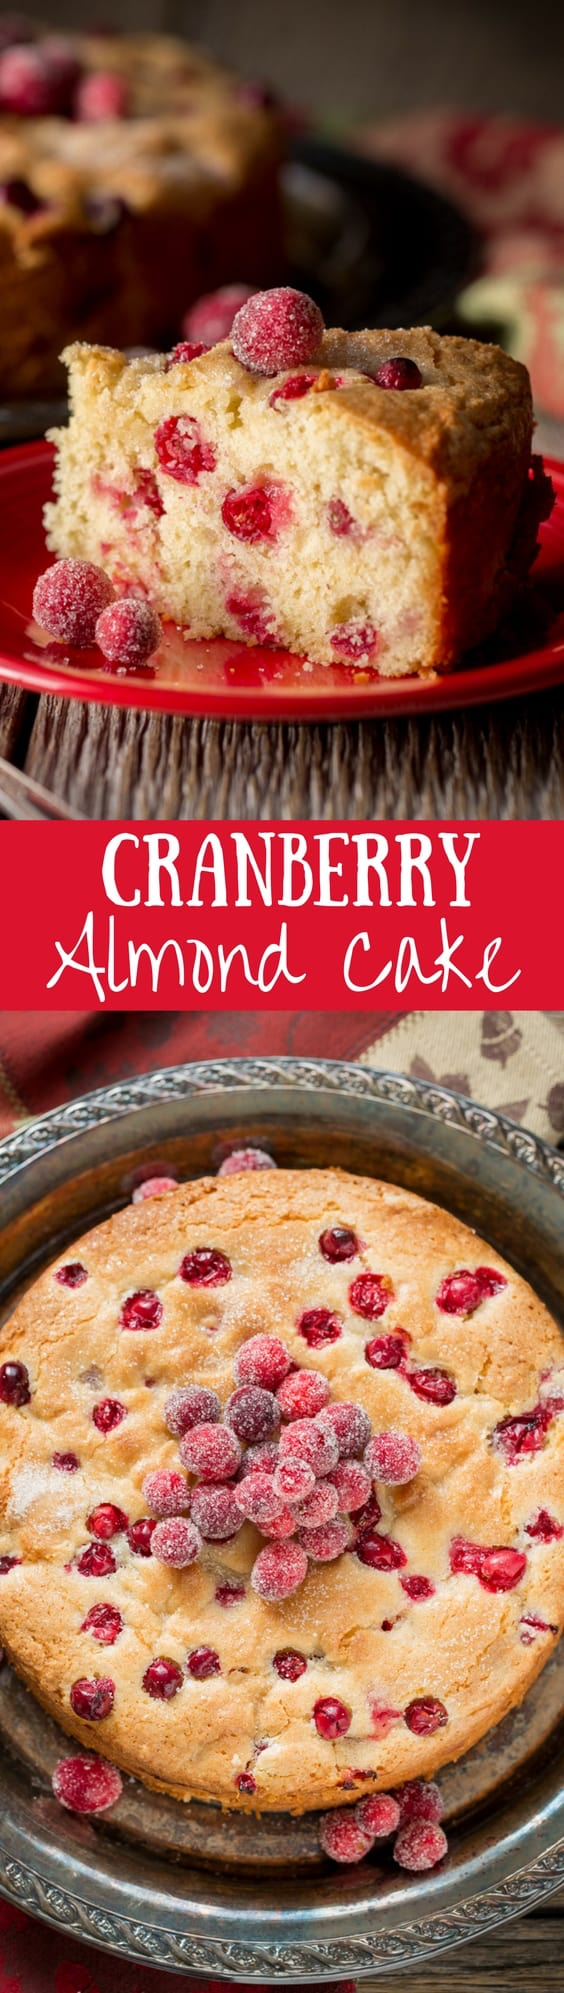 Cranberry Almond Cake ~Lightly sweet, moist and delicious, this easy treat is perfect as a breakfast (coffee) cake, a light dessert after lunch or an anytime snack cake. www.savingdessert.com #savingroomfordessert #cranberry #breakfastcake #cranberrycake #thanksgiving #christmas